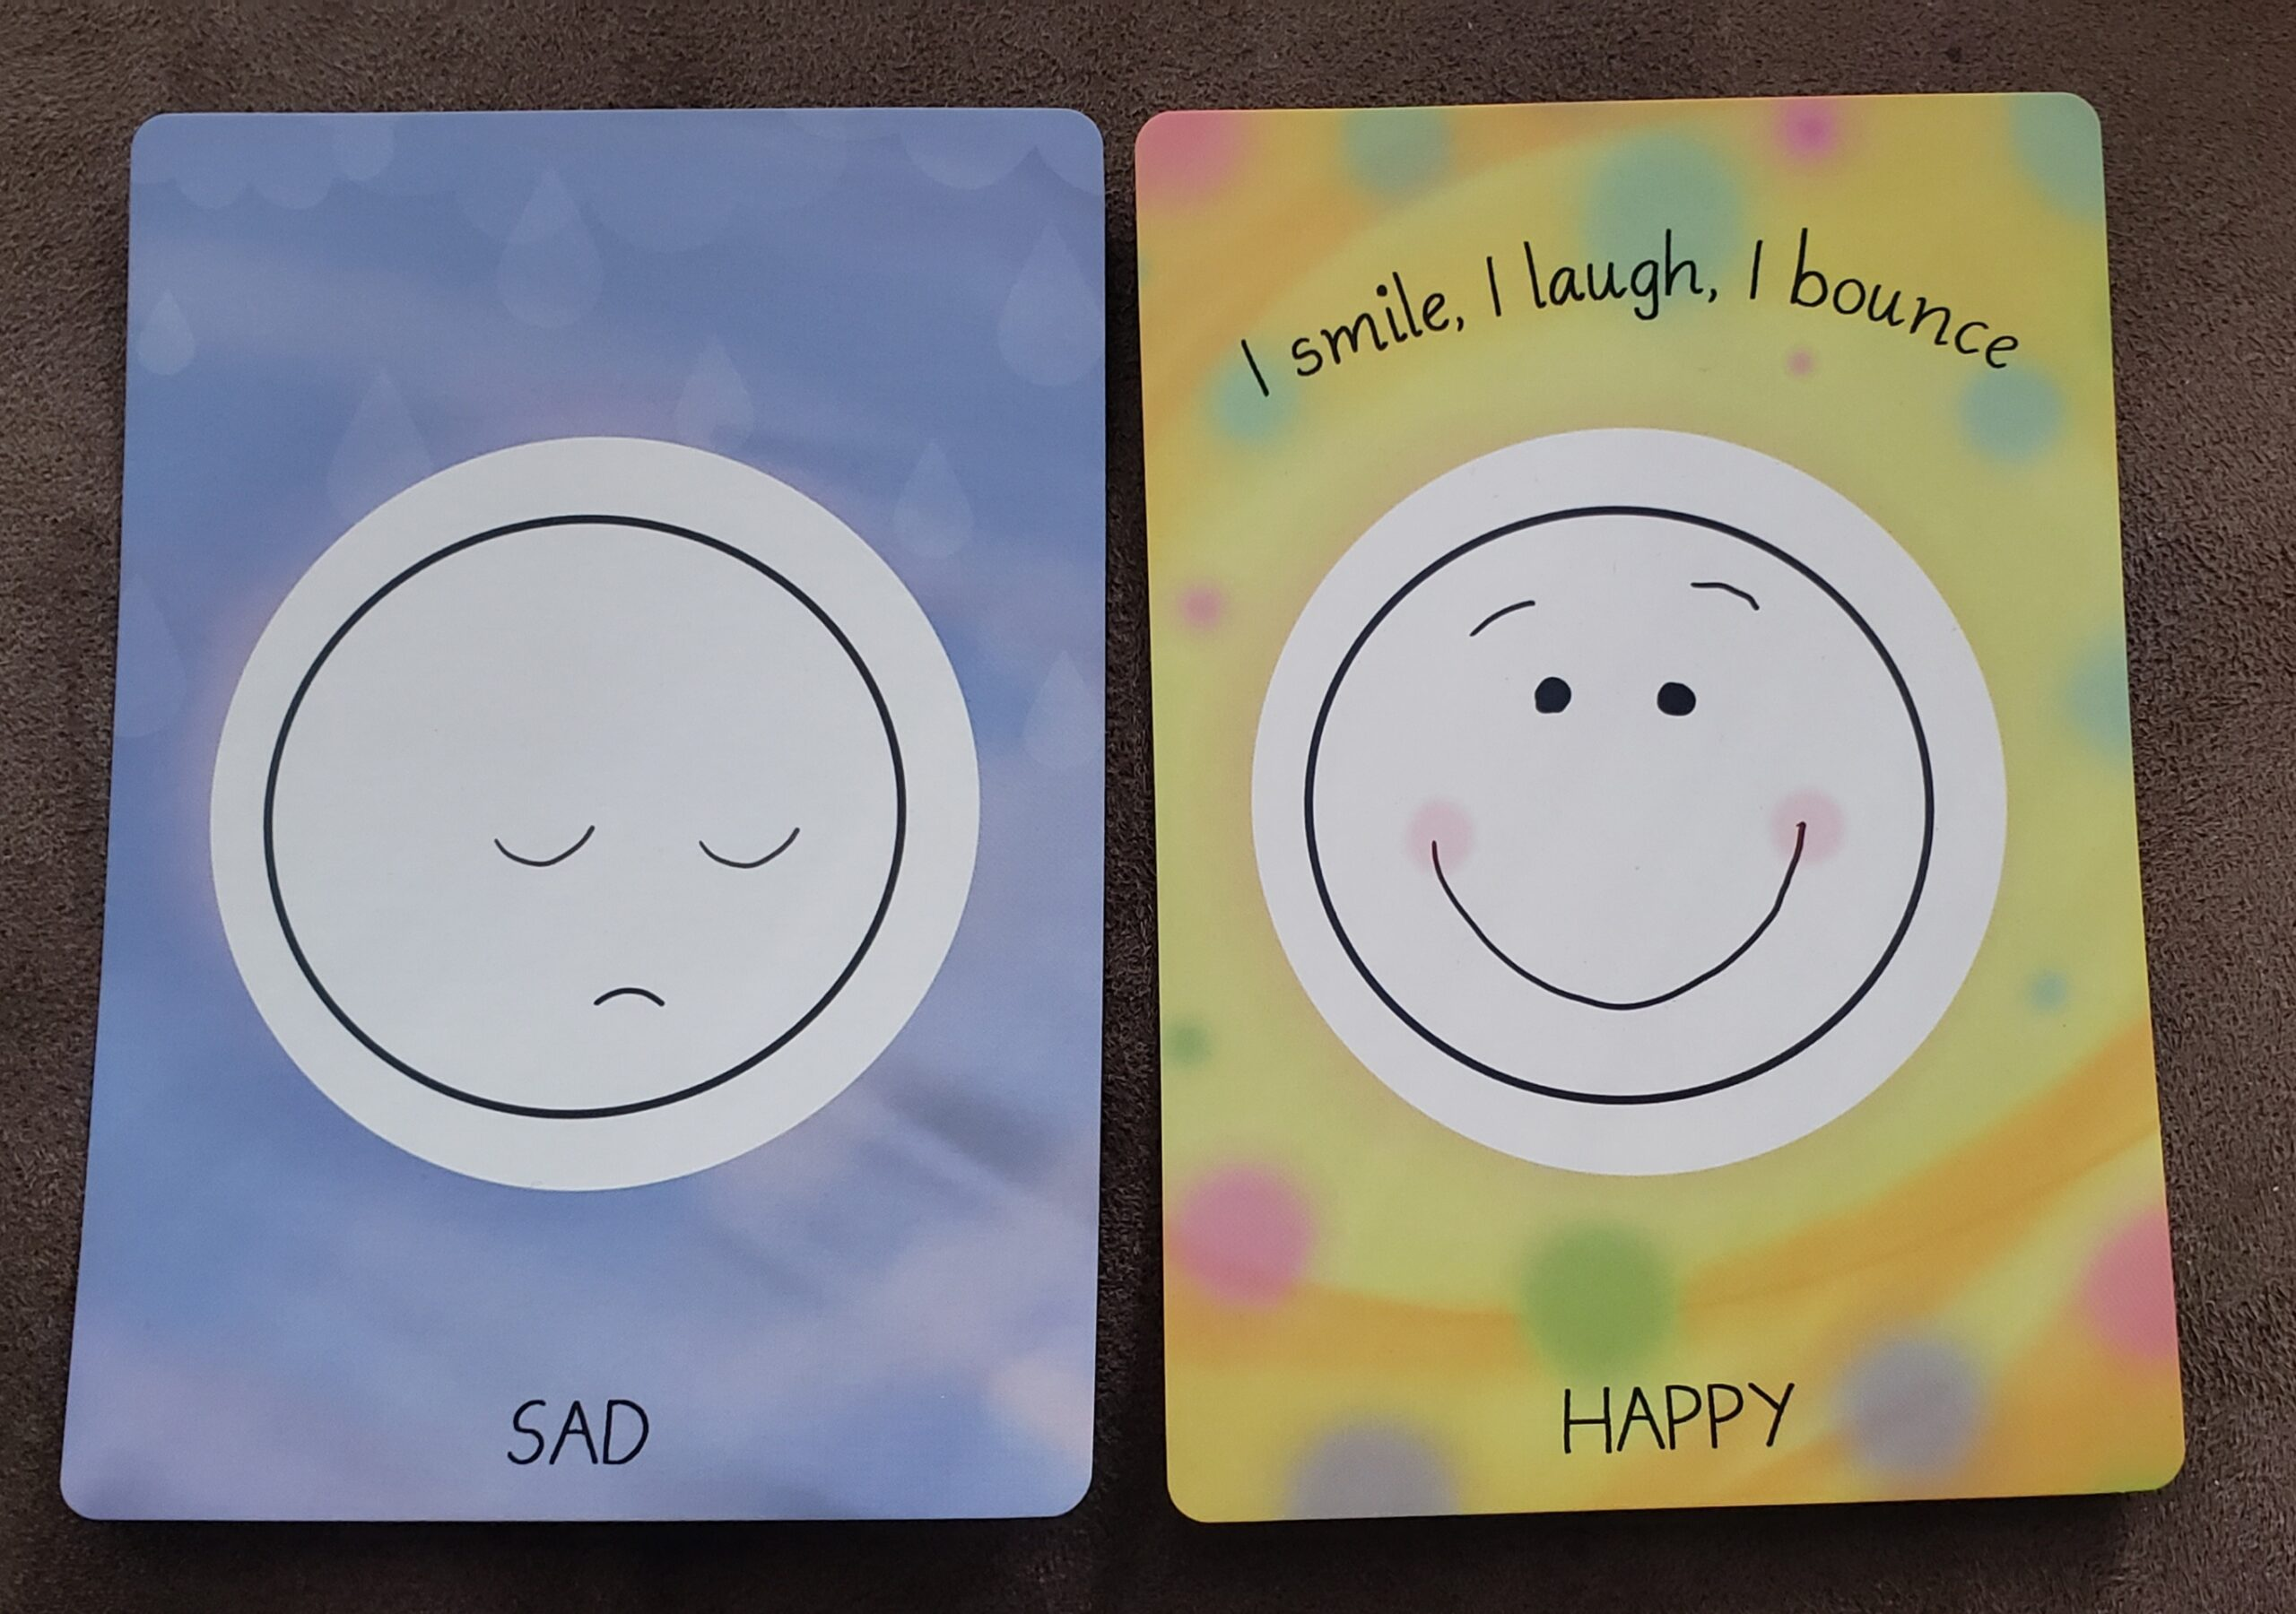 sad and happy cards front